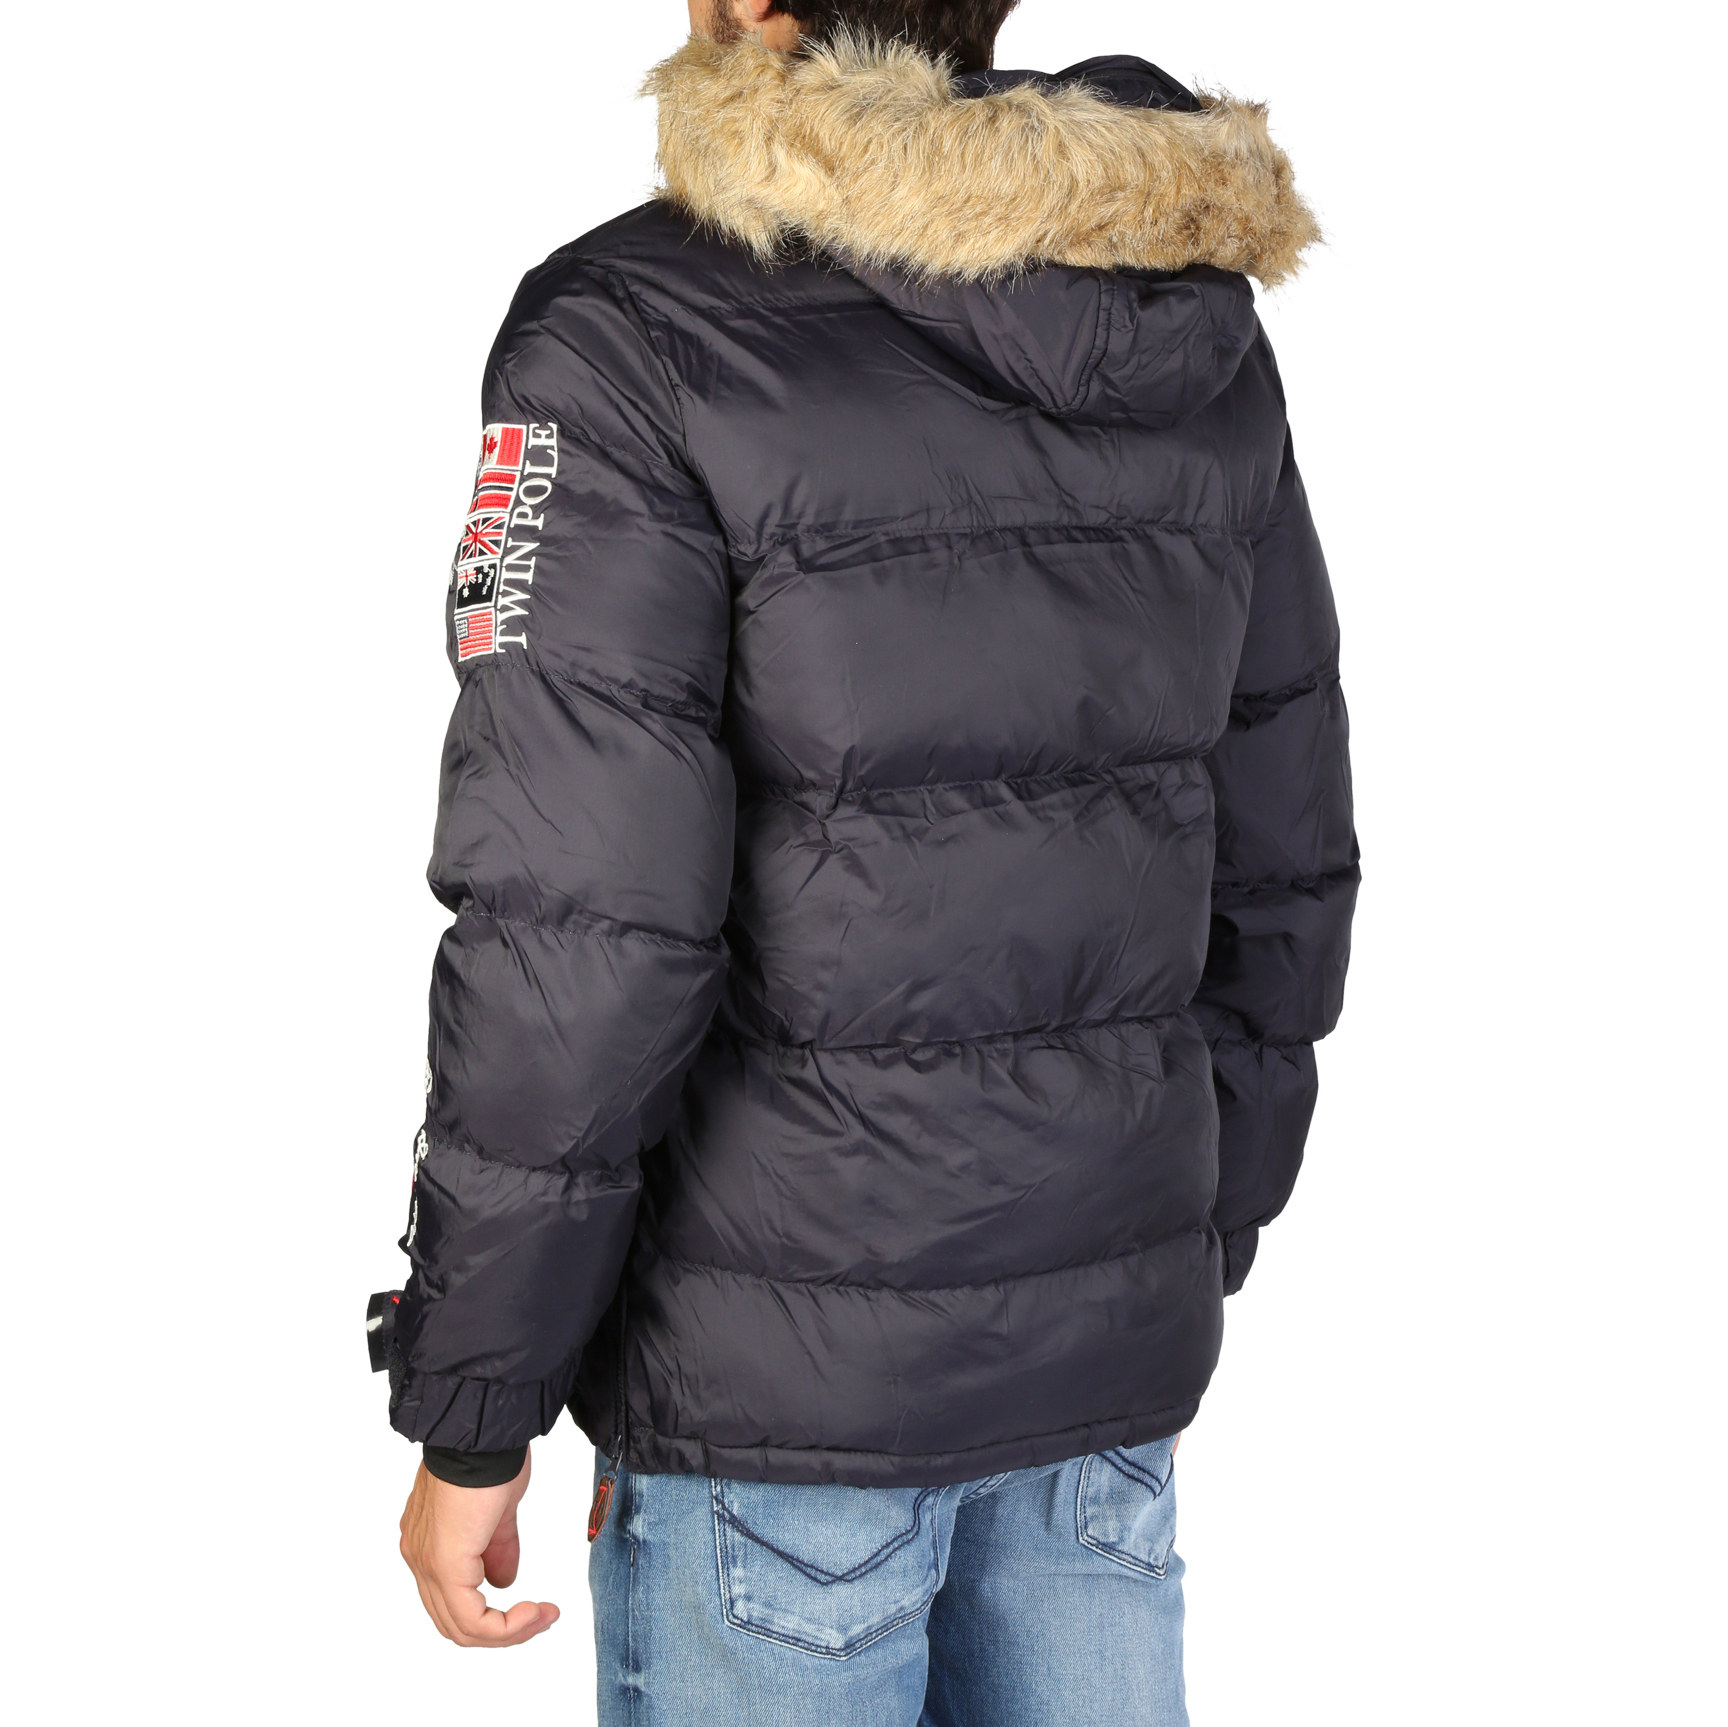 Vestes Geographical Homme Norway Homme Geographical Brice man, Bleu/Rouge/Brun Automne/Hiver 3d4679